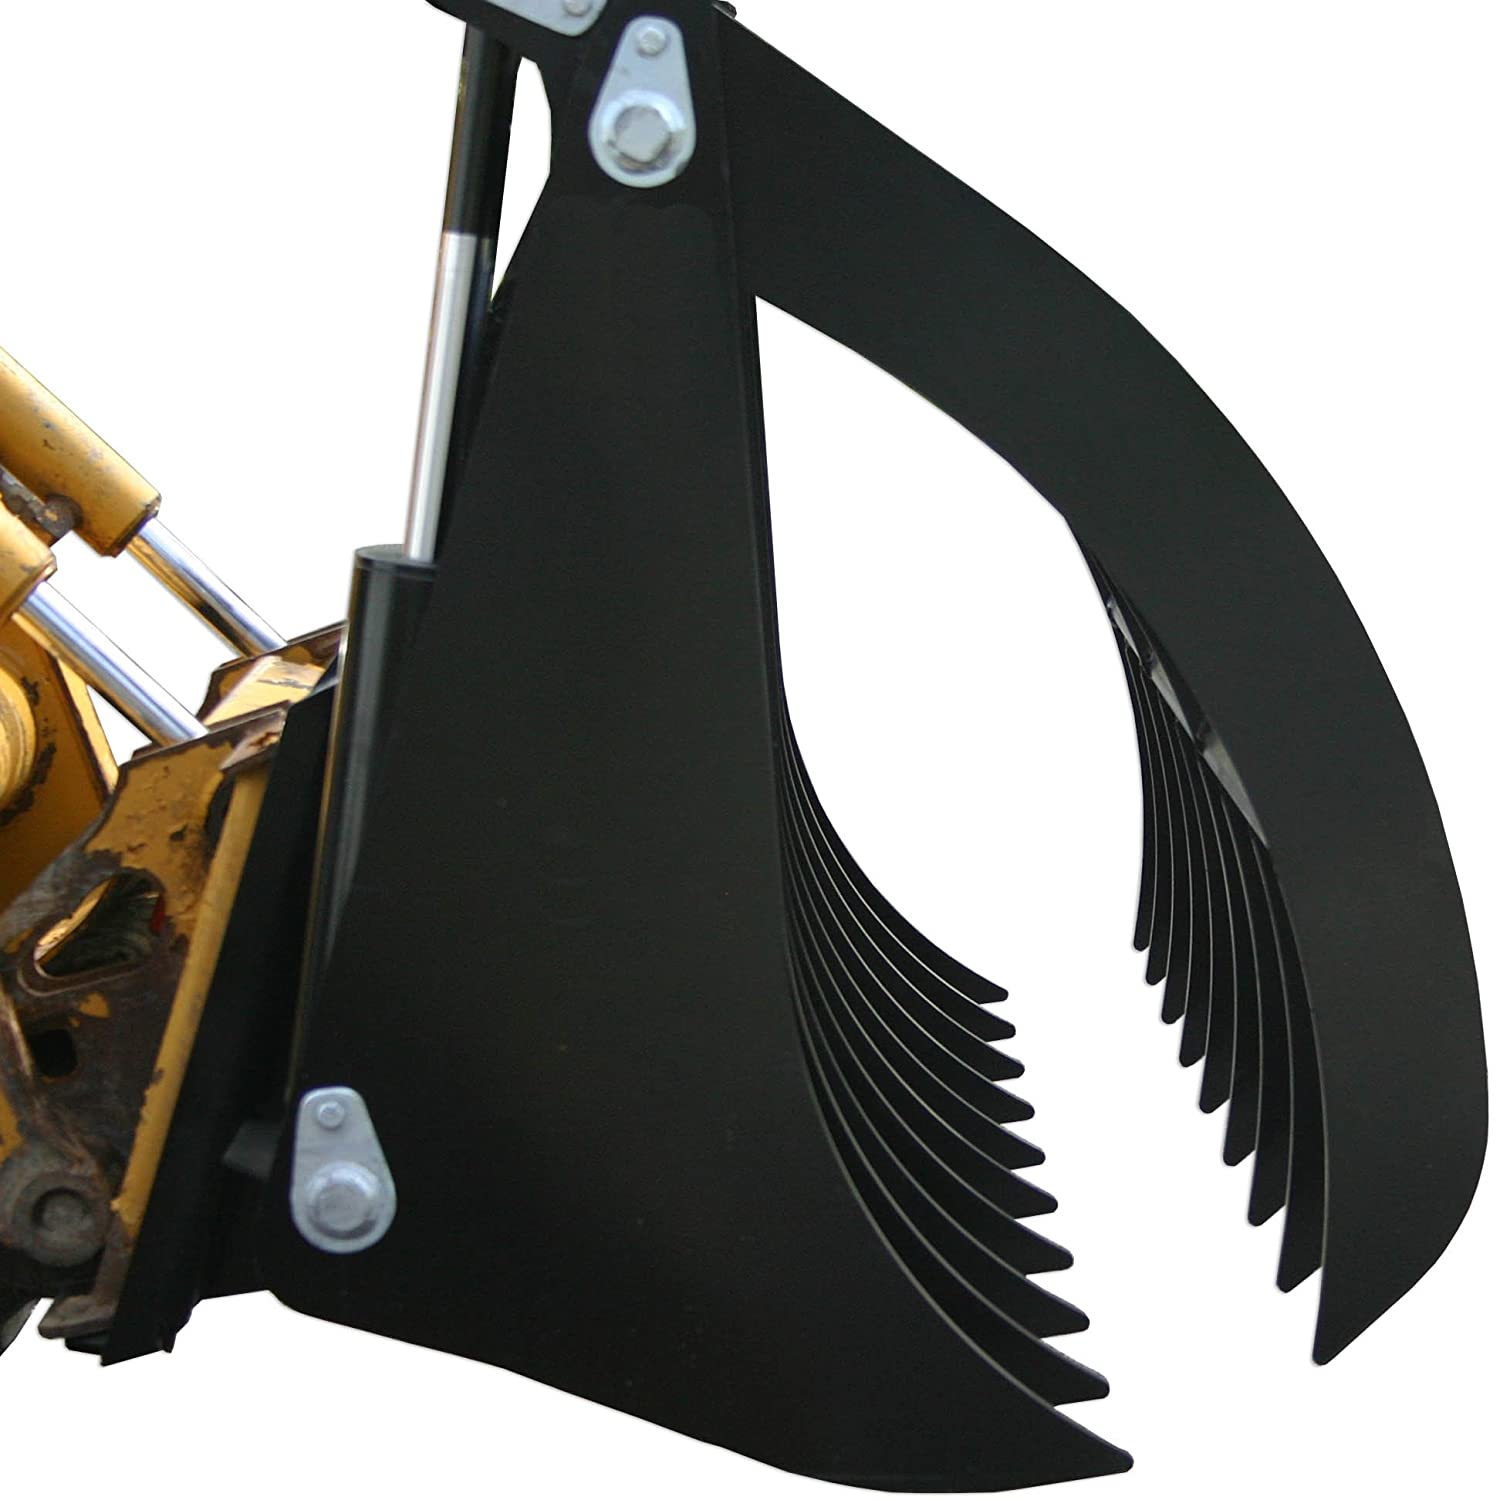 Titan 84' Root Grapple Rock Rake Skid Steer Clamshell Attachment loader V2 Titan Attachments